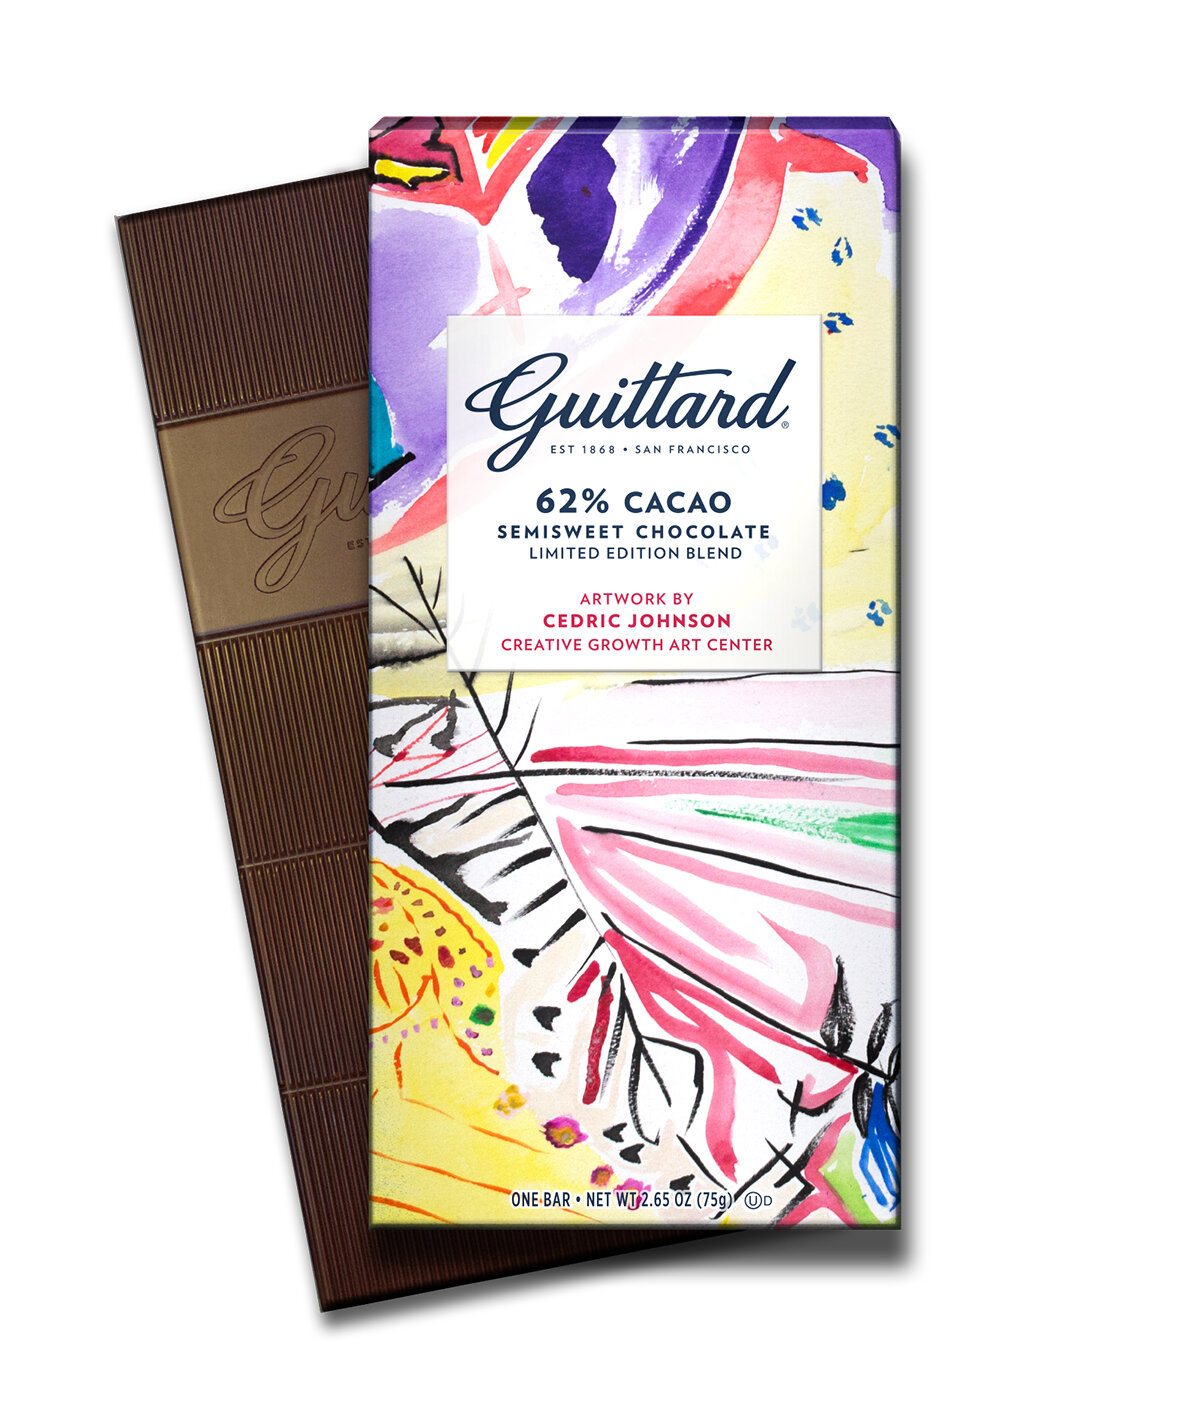 Guittard 62% Cacao Eureka Works Semisweet Chocolate Created in Partnership with Creative Growth